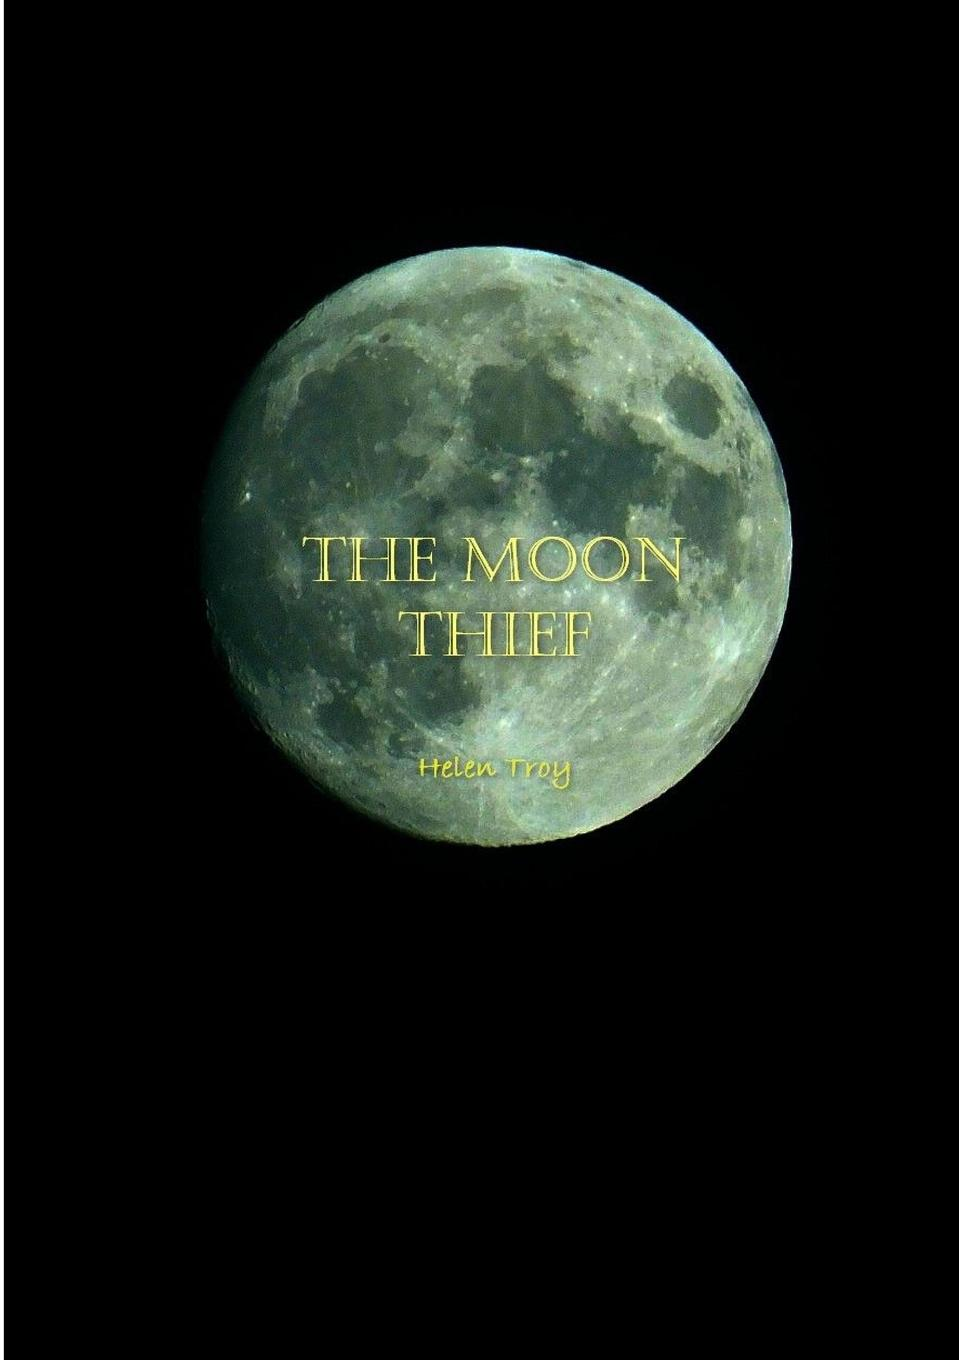 Helen Troy The Moon Thief listen to the moon